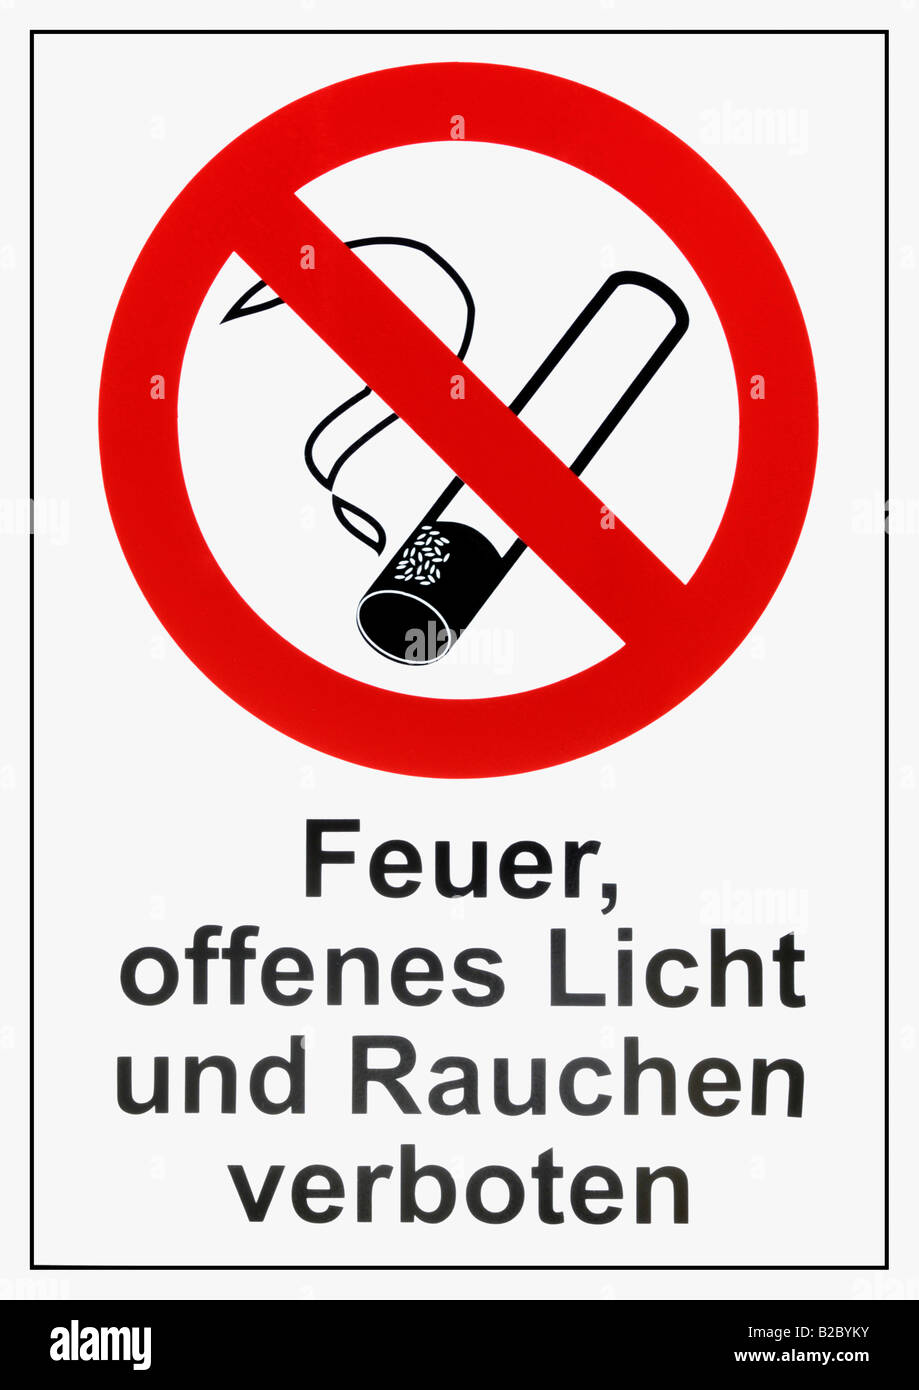 Instruction sign reading Feuer, offenes Licht und Rauchen verboten, fire, lighters and smoking prohibited - Stock Image